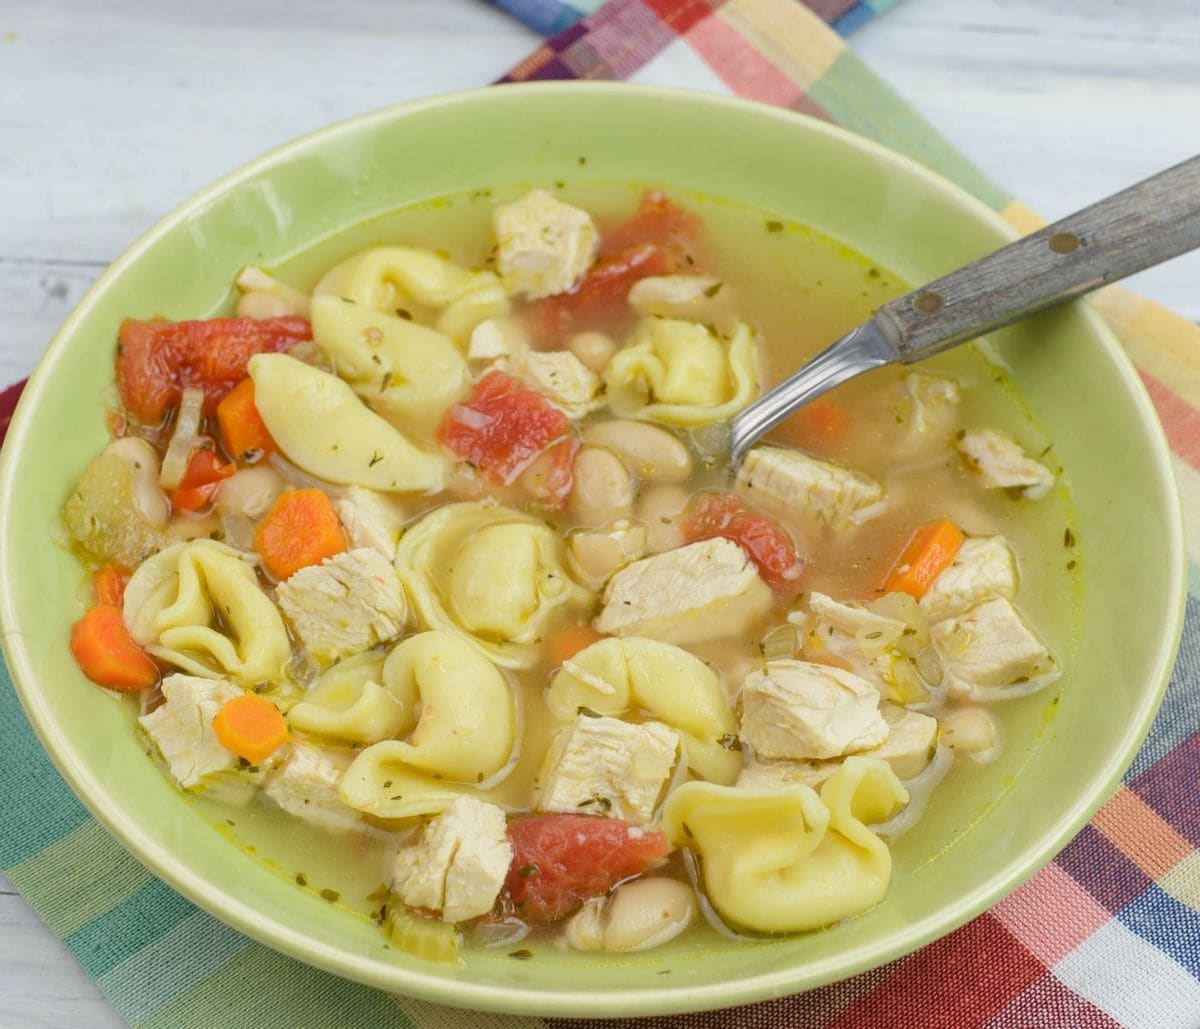 A bowl of tortellini soup with chicken.